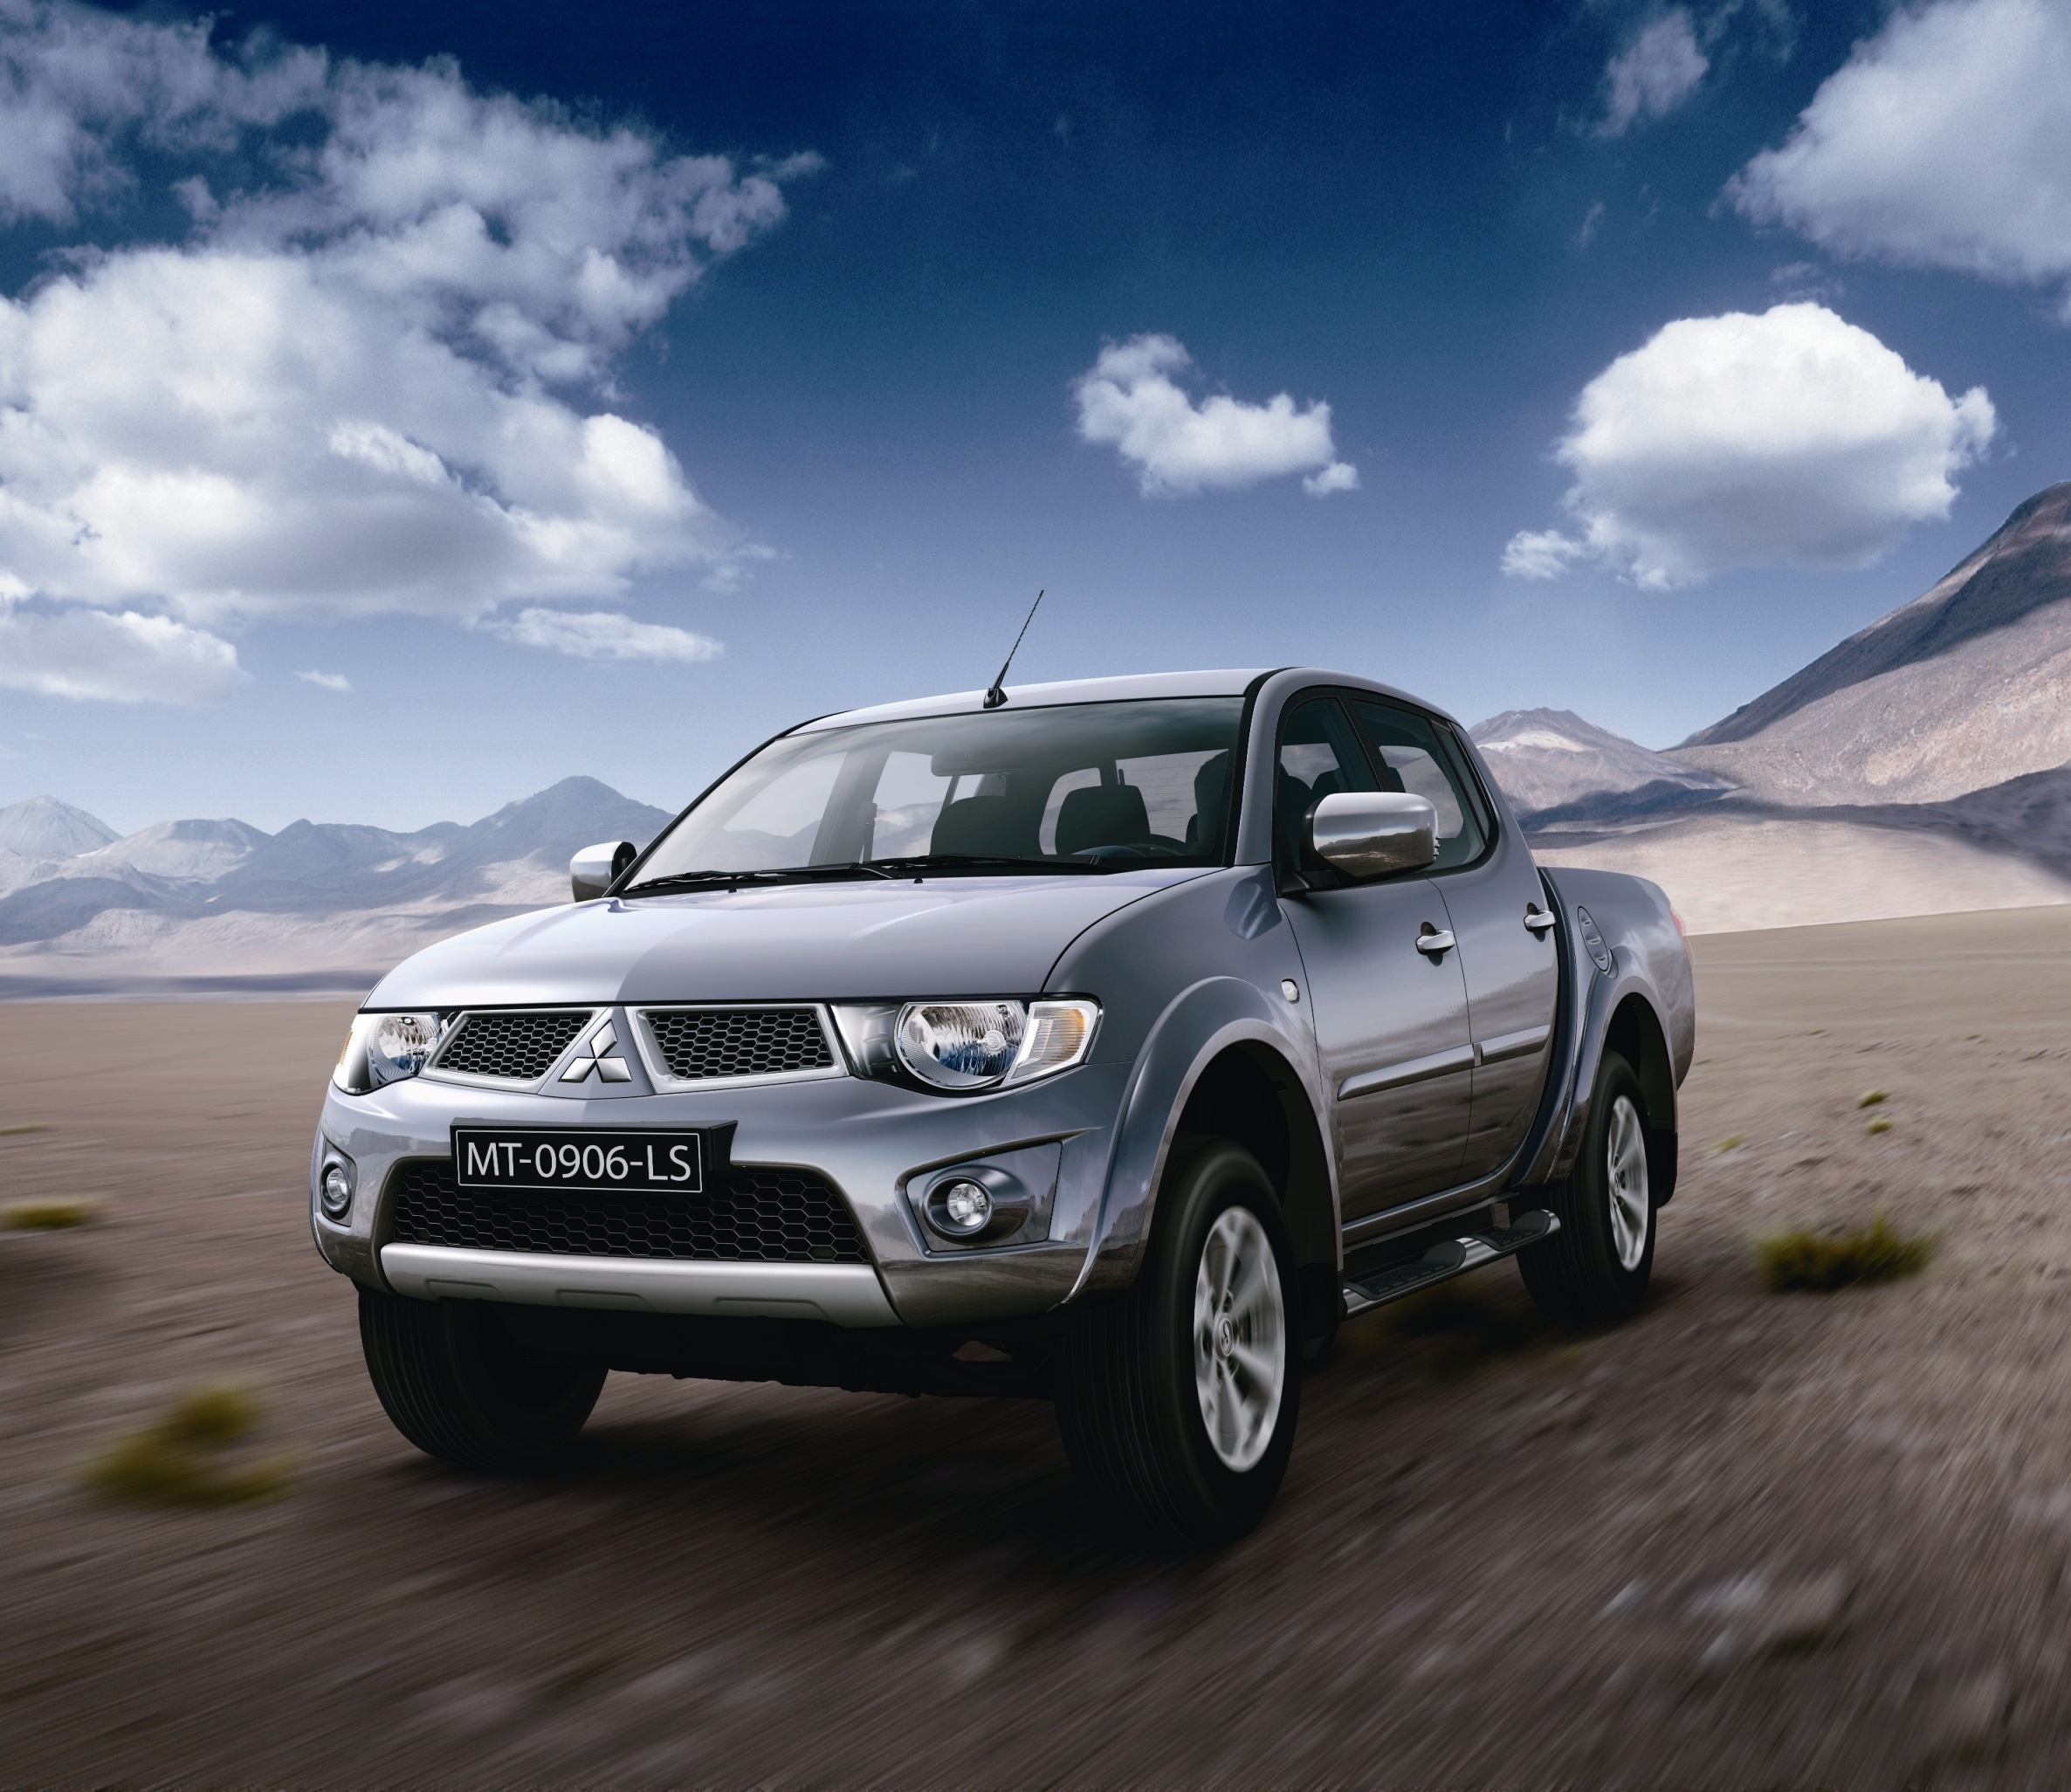 High Quality Picture Of Mitsubishi L200, Wallpaper Of Cars